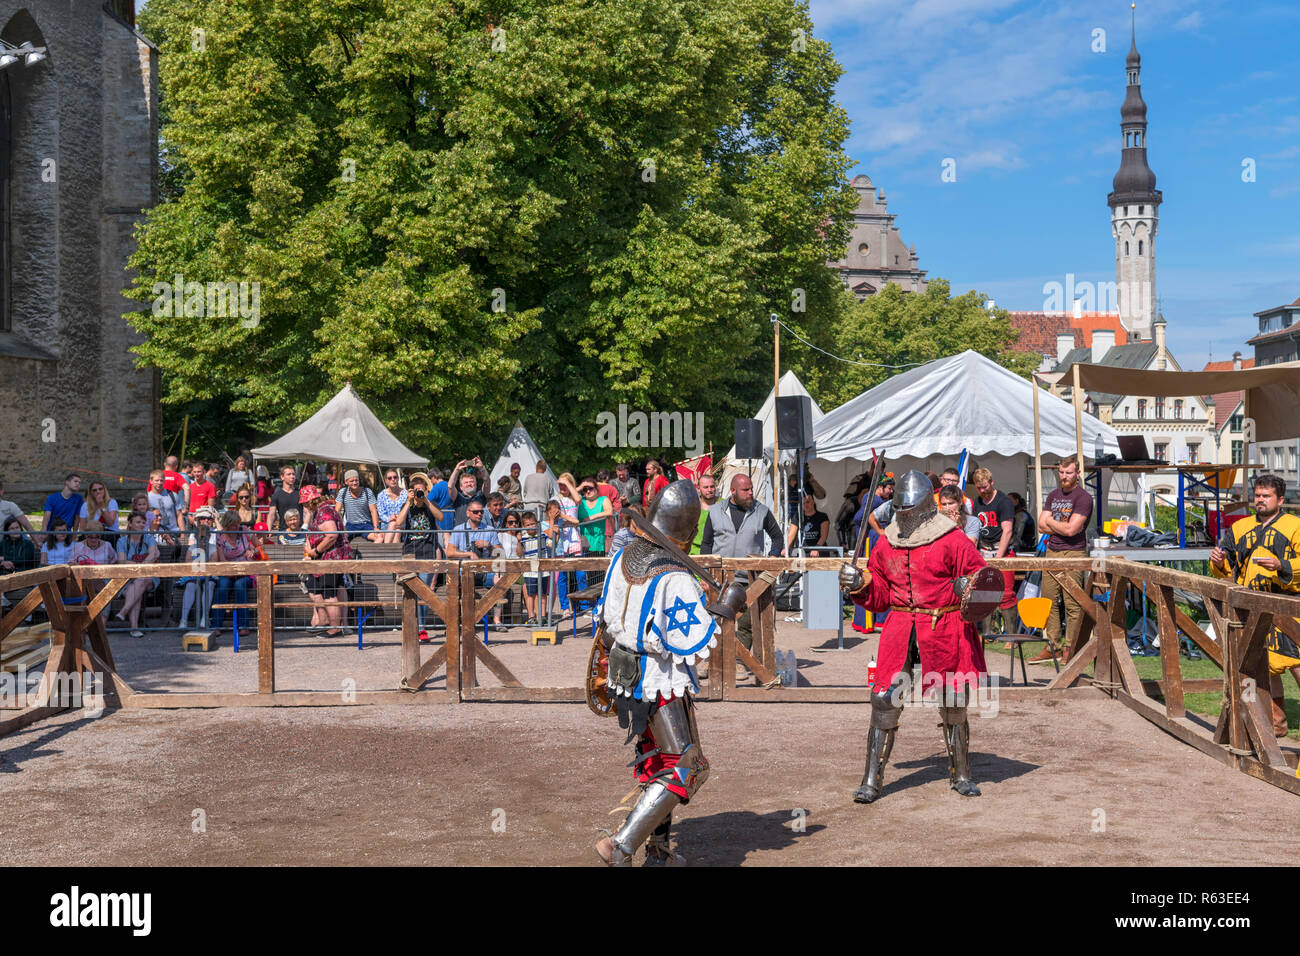 Sword fighting at the July 2018 Medieval Days Festival in the historic Old Town, Tallinn, Estonia - Stock Image